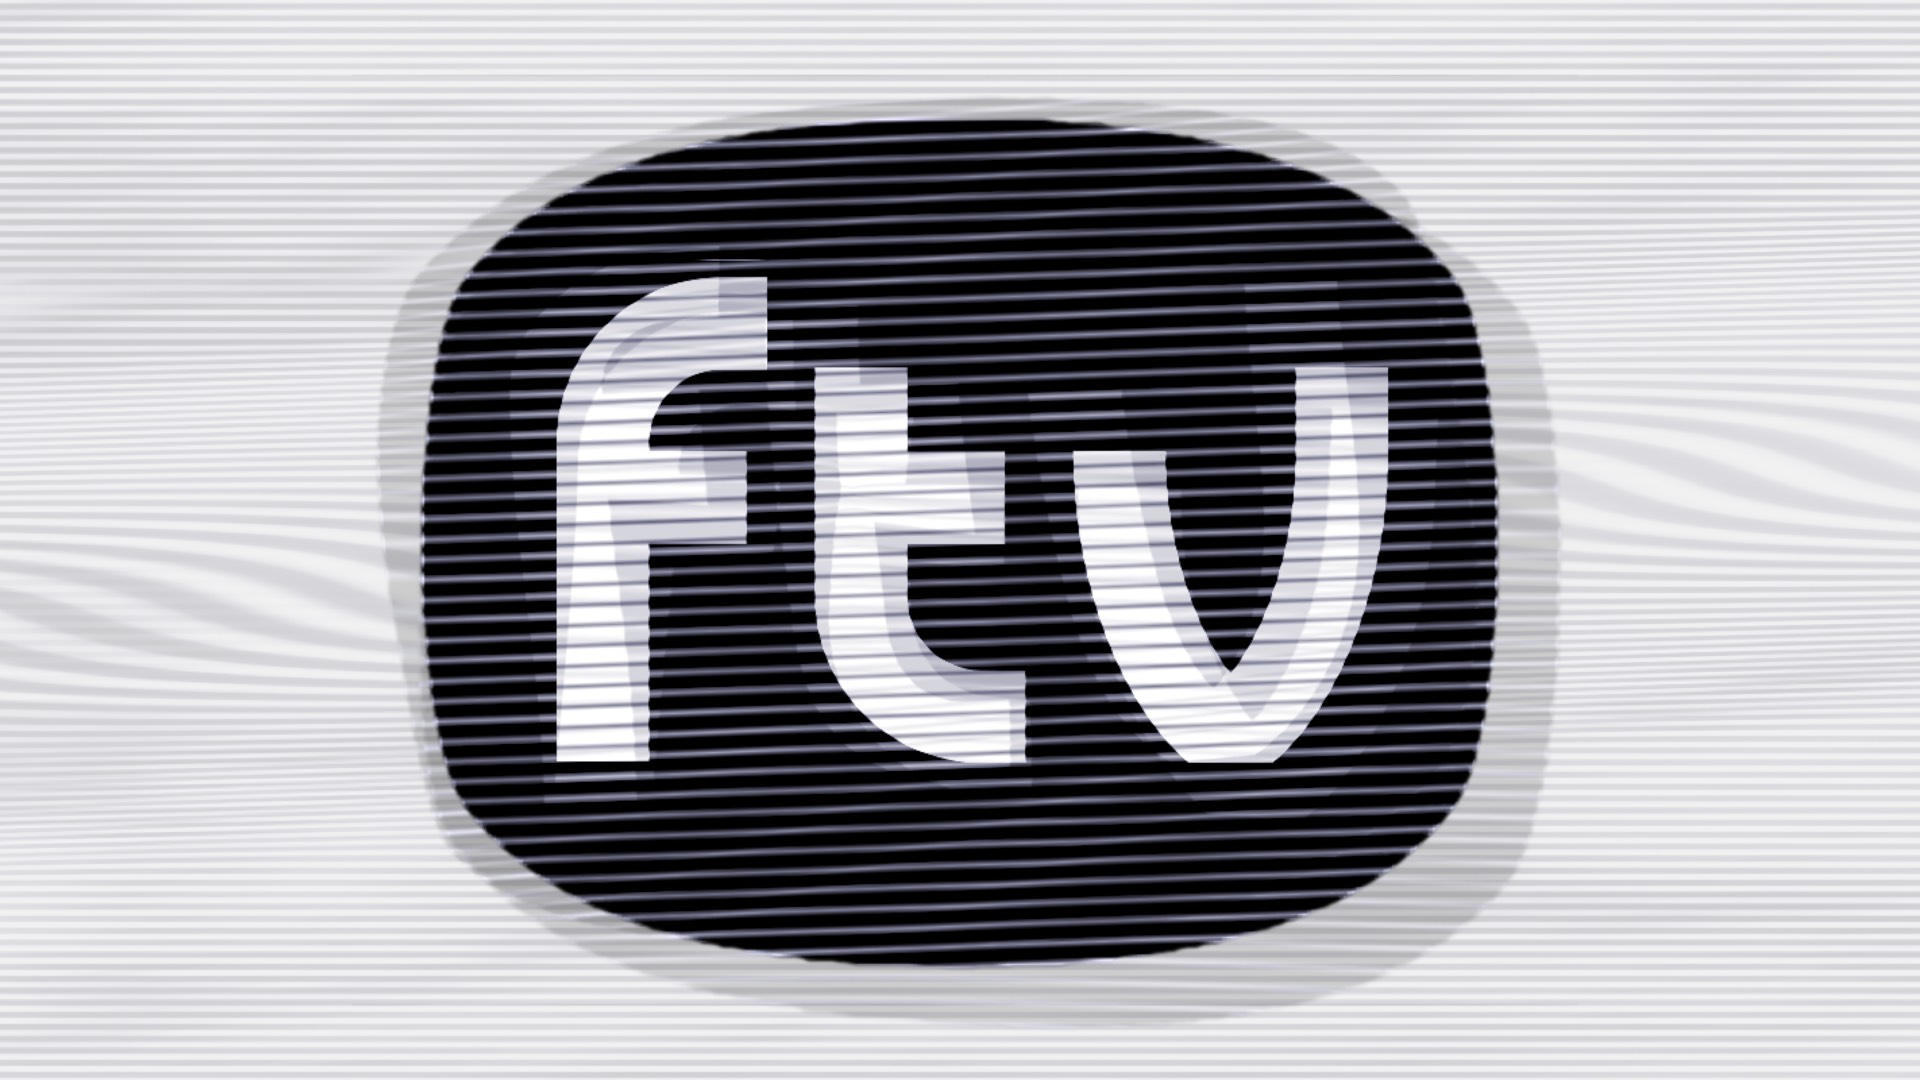 Fluxible TV logo against a noisy TV background